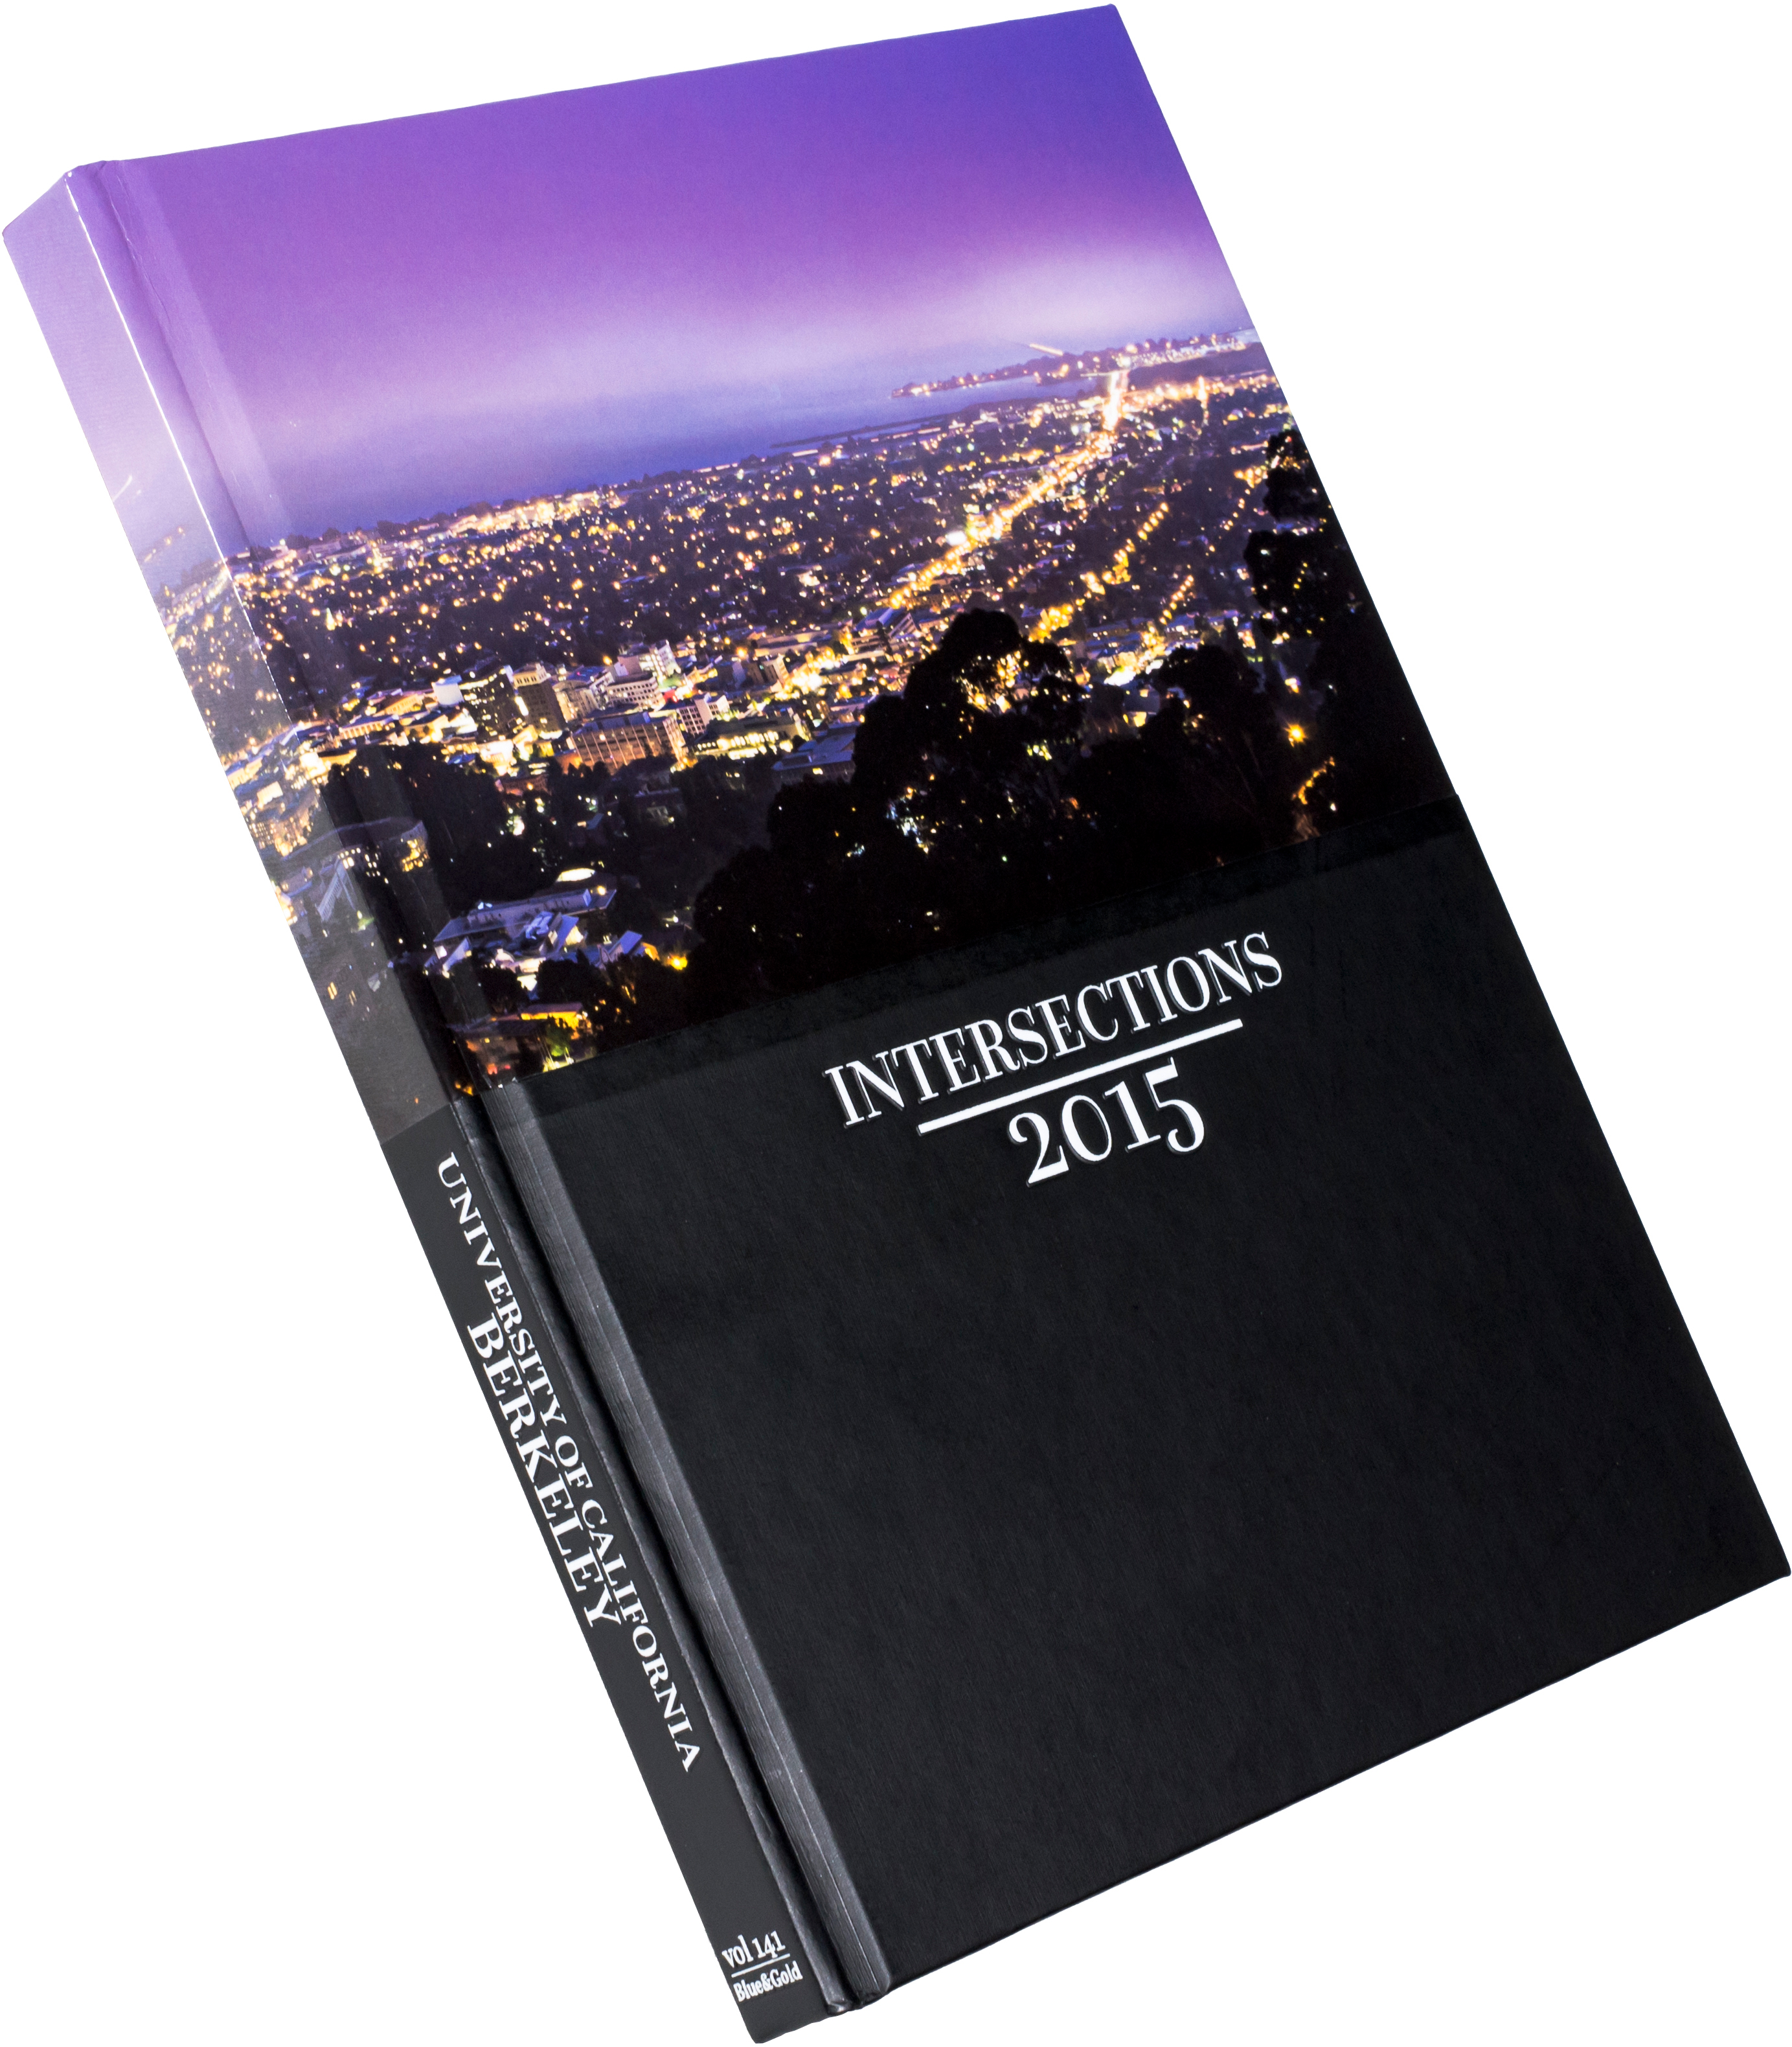 Yearbook with title 'Intersections' and date 2015. The spine says 'University of California Berkeley' and indicates volume 141. The top half of the cover features a photo overlooking the eastern part of the San Francisco Bay Area.